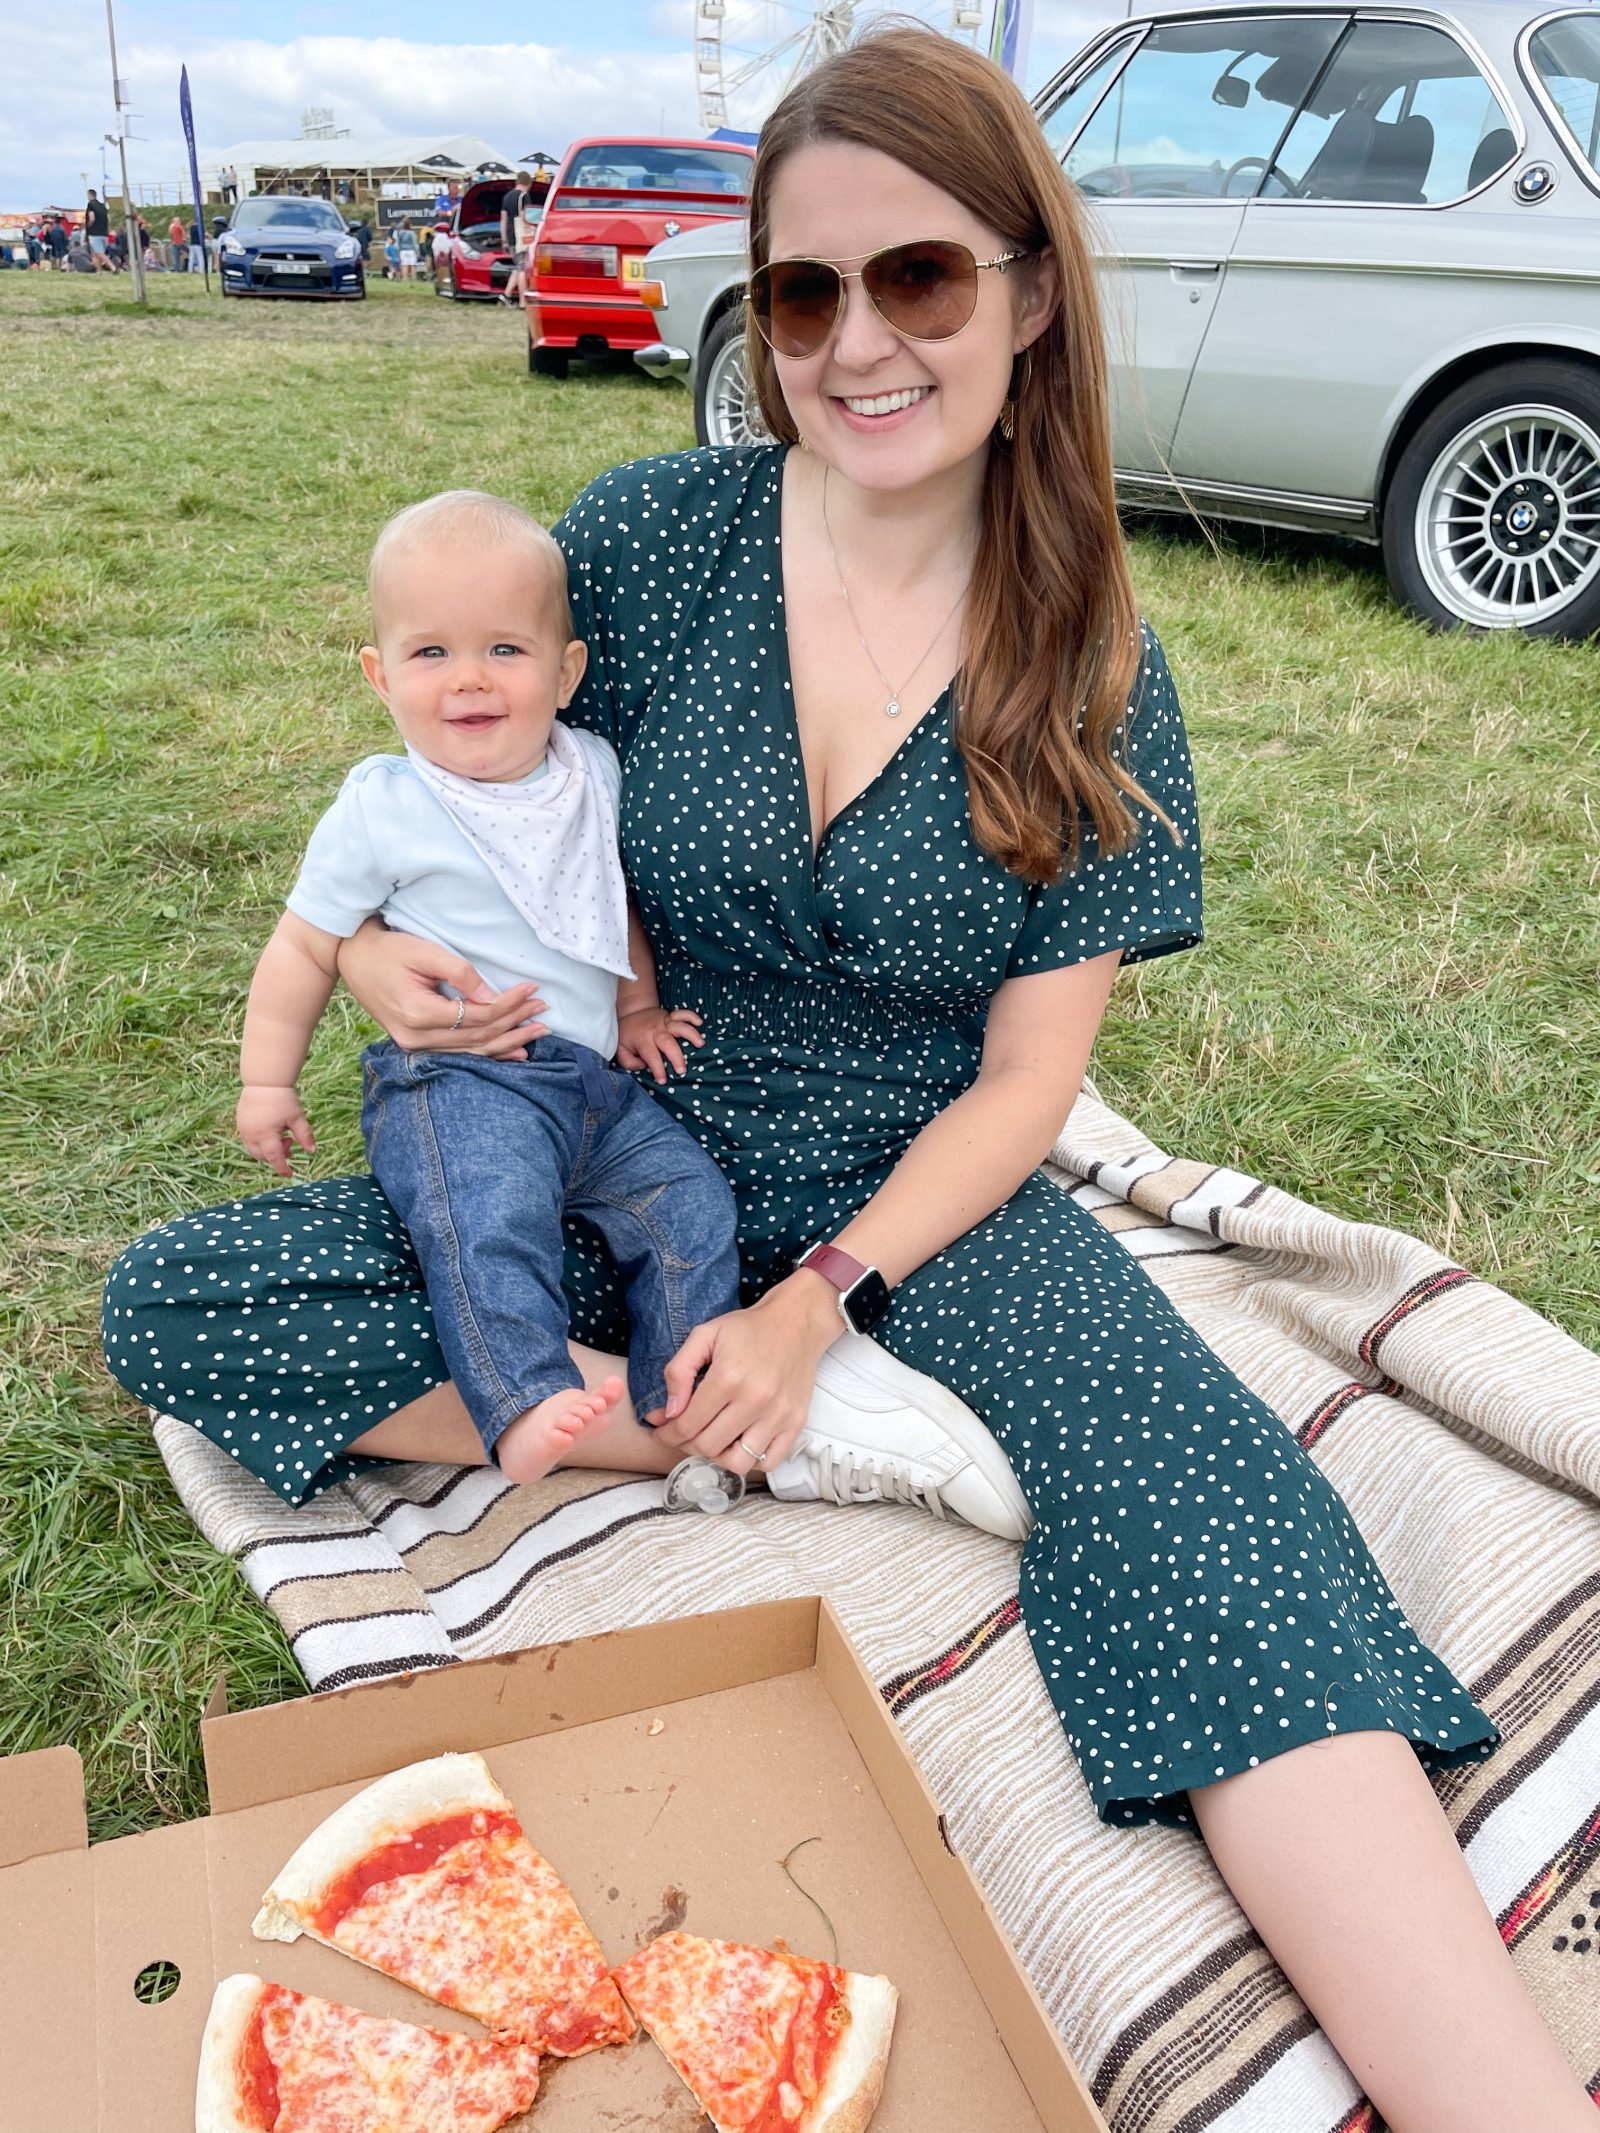 Ami and Arthur with Pizza at Carfest